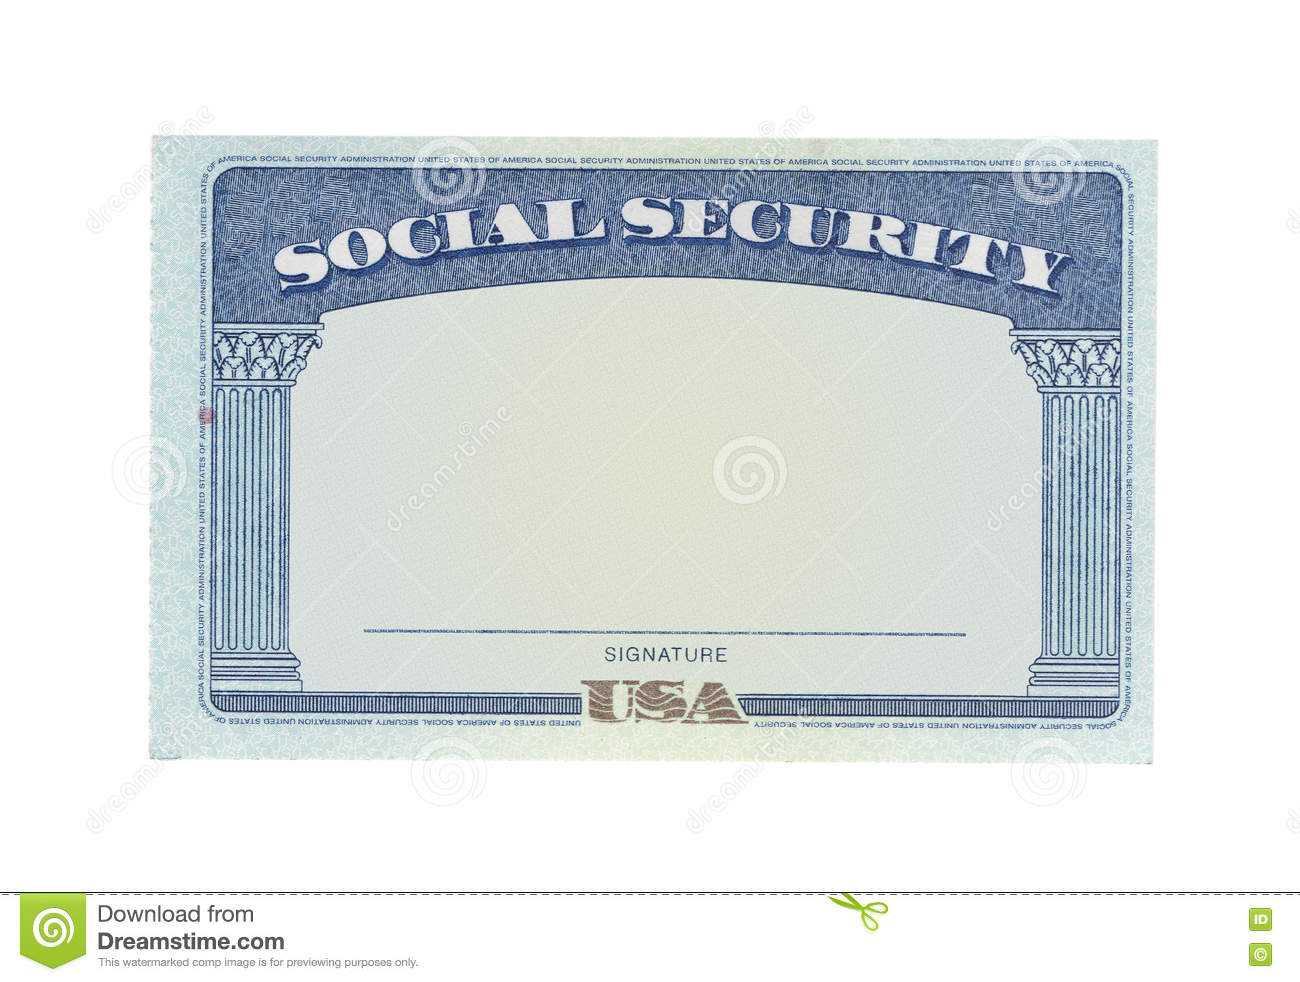 Blank Social Security Card Template Download - Great Throughout Blank Social Security Card Template Download